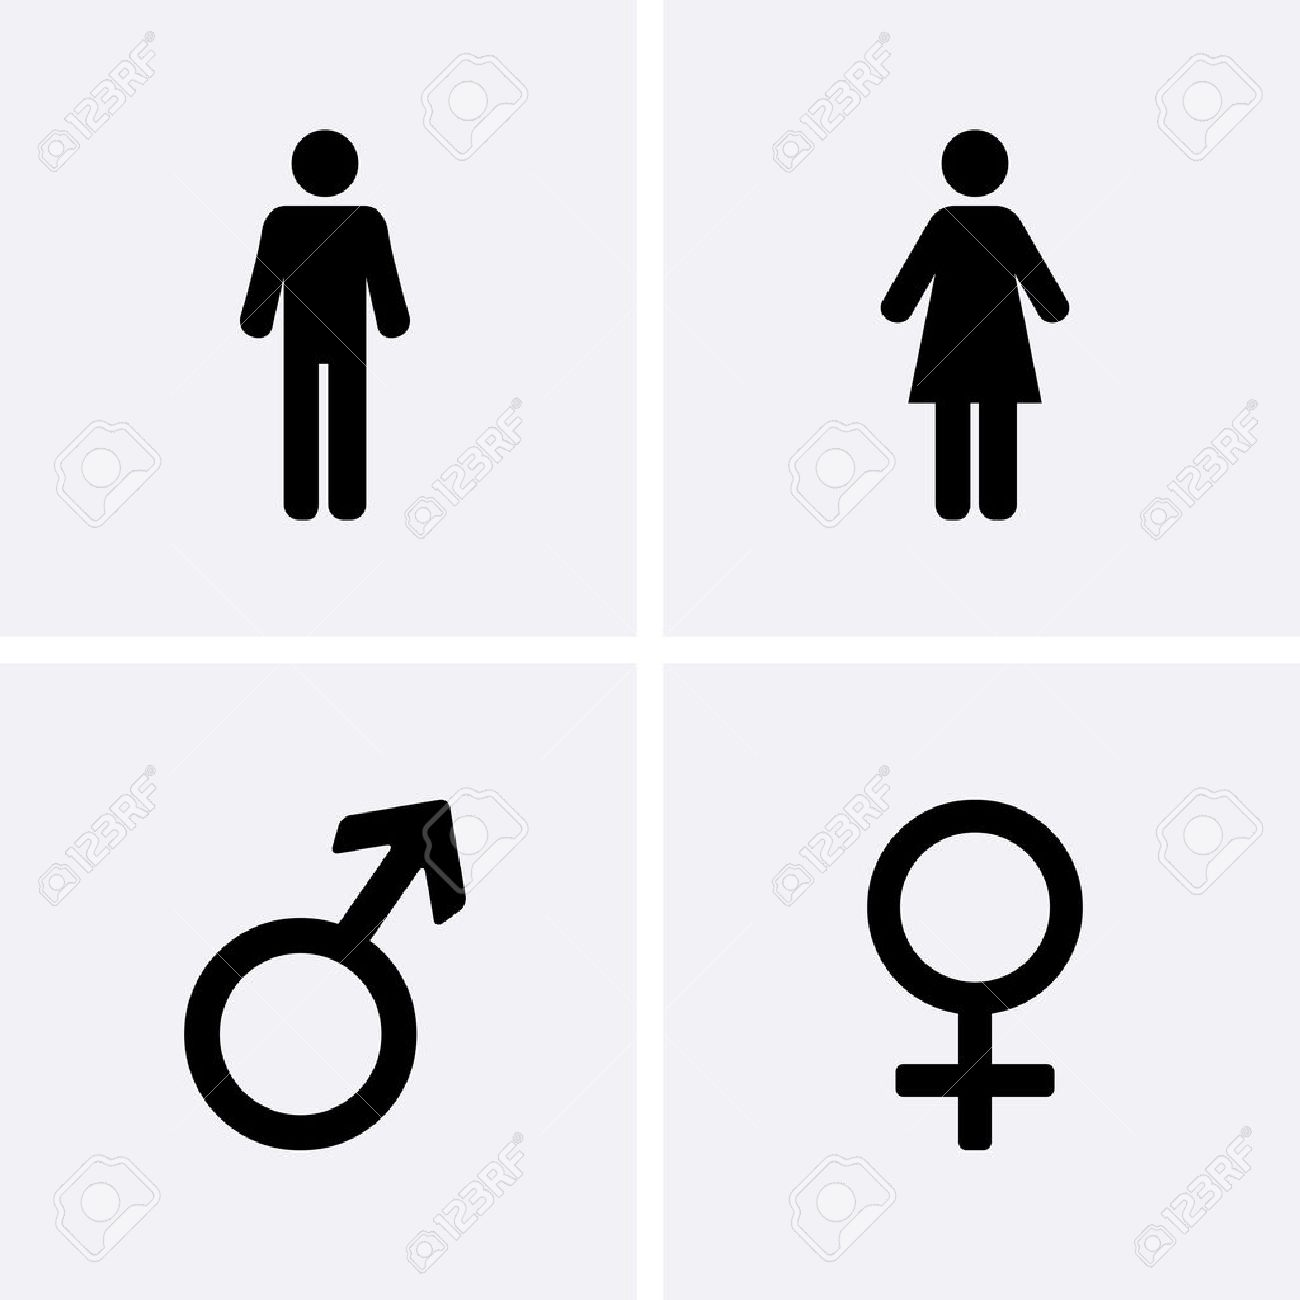 Restroom Icons: man, woman, Male and female symbol - 65310634